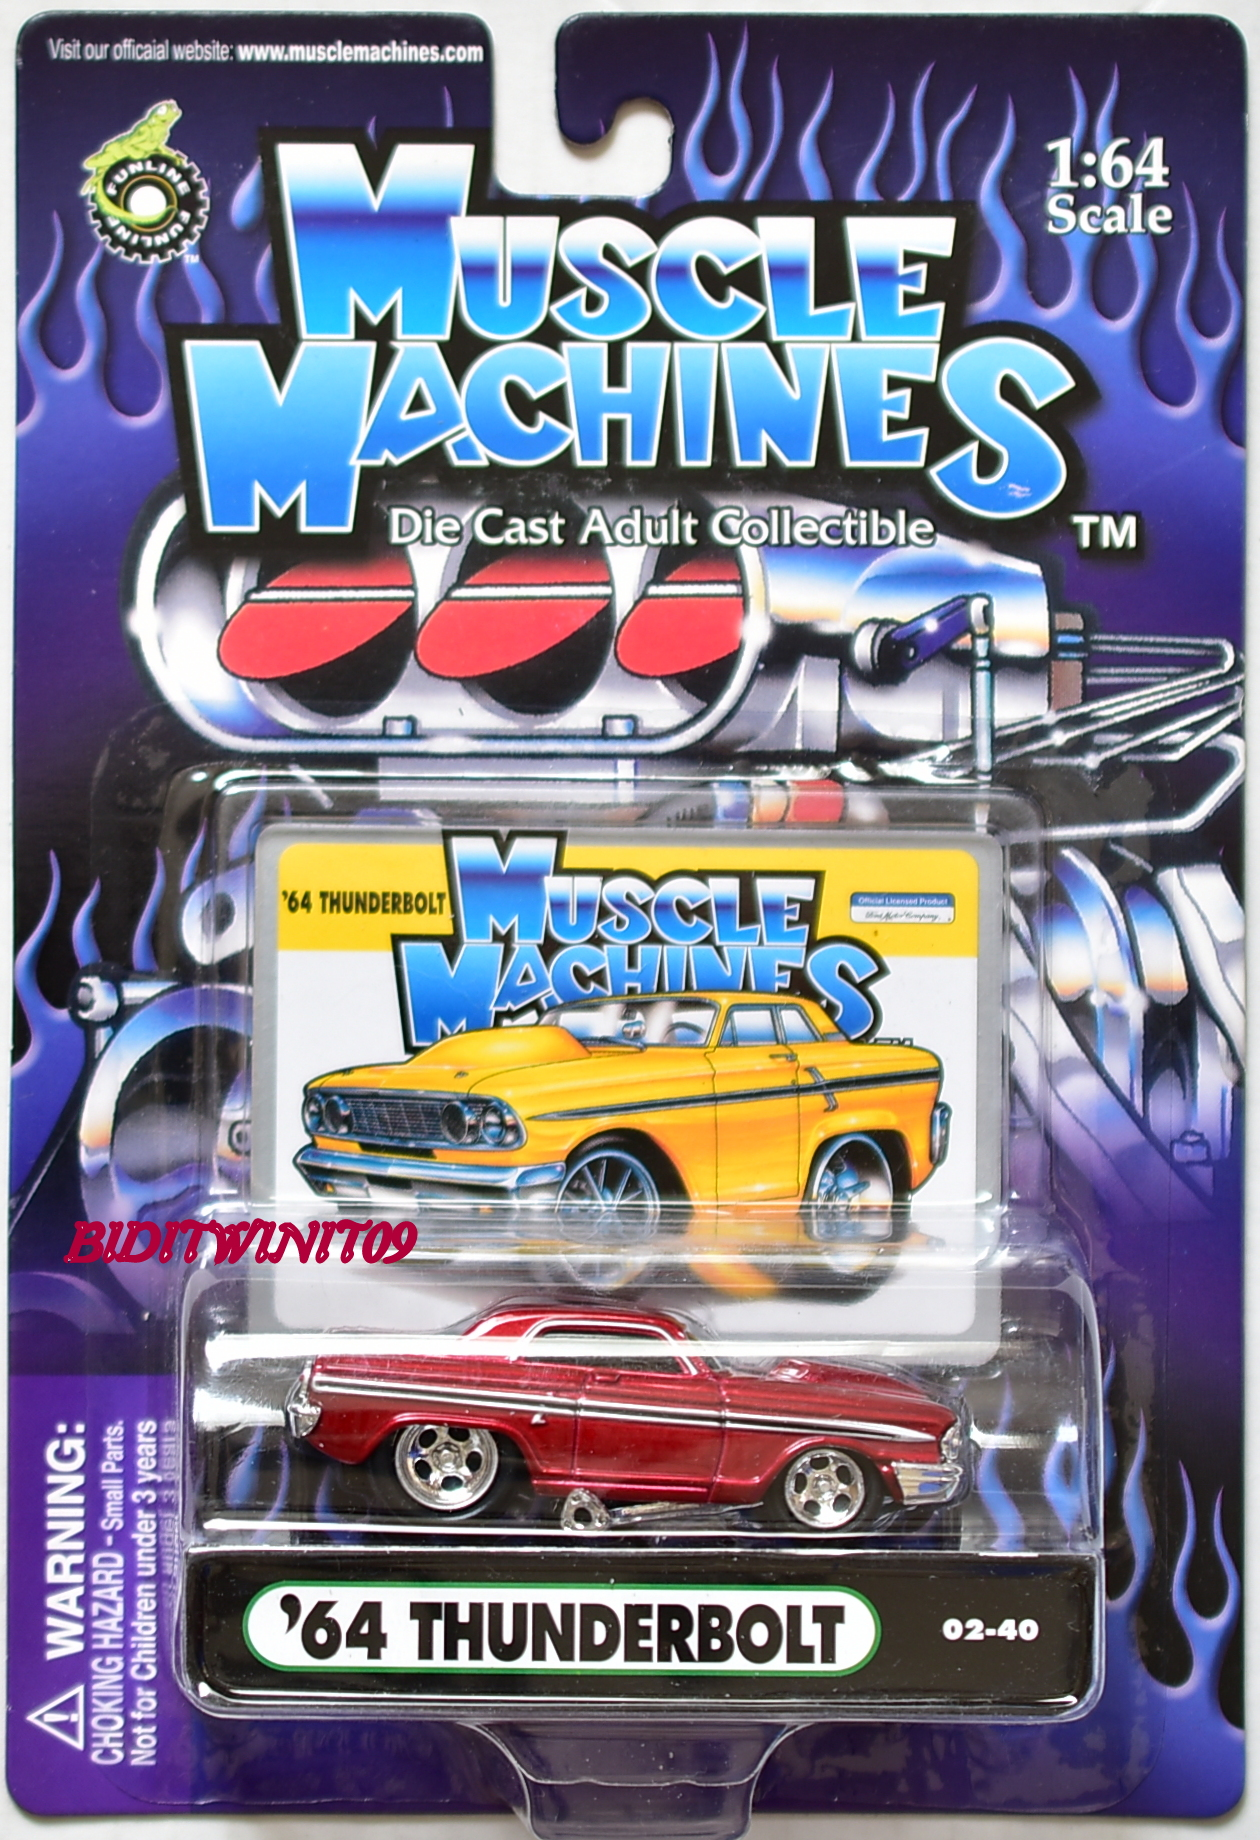 MUSCLE MACHINES '64 THUNDERBOLT 02-40 RED 1:64 SCALE E+